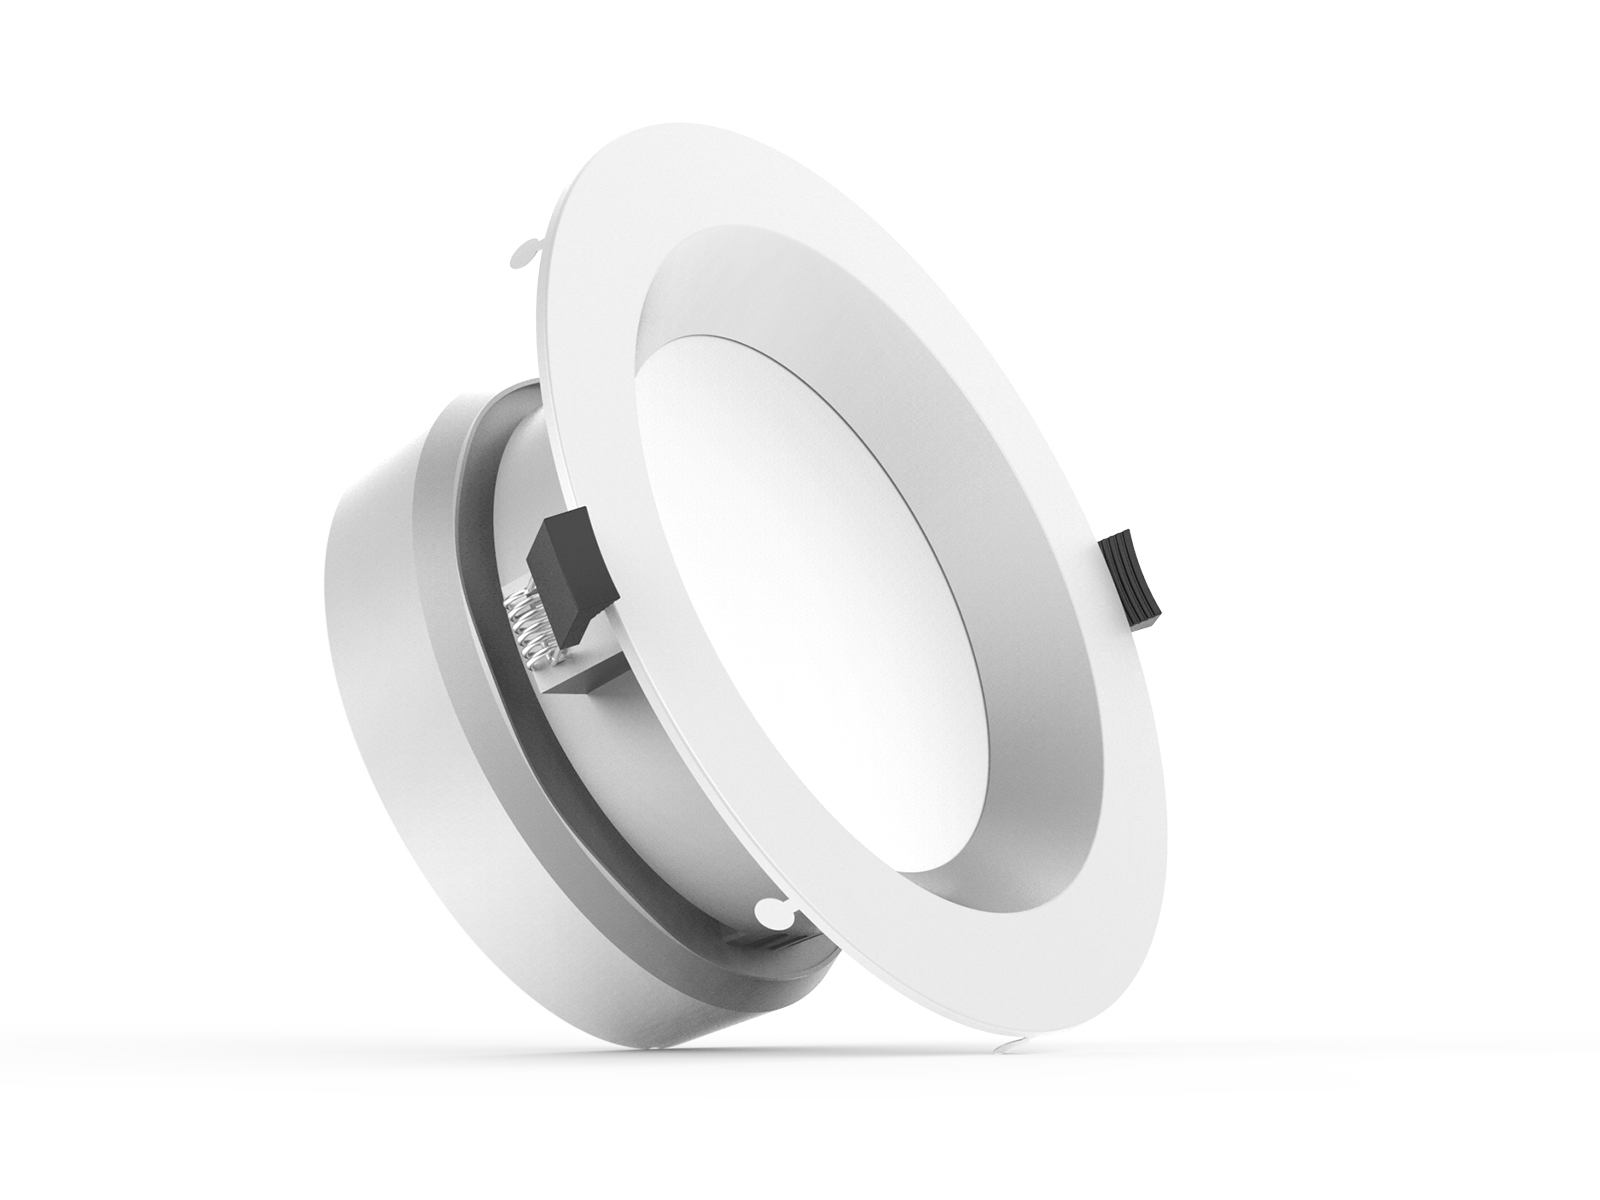 DL108 1 4inch LED Downlights